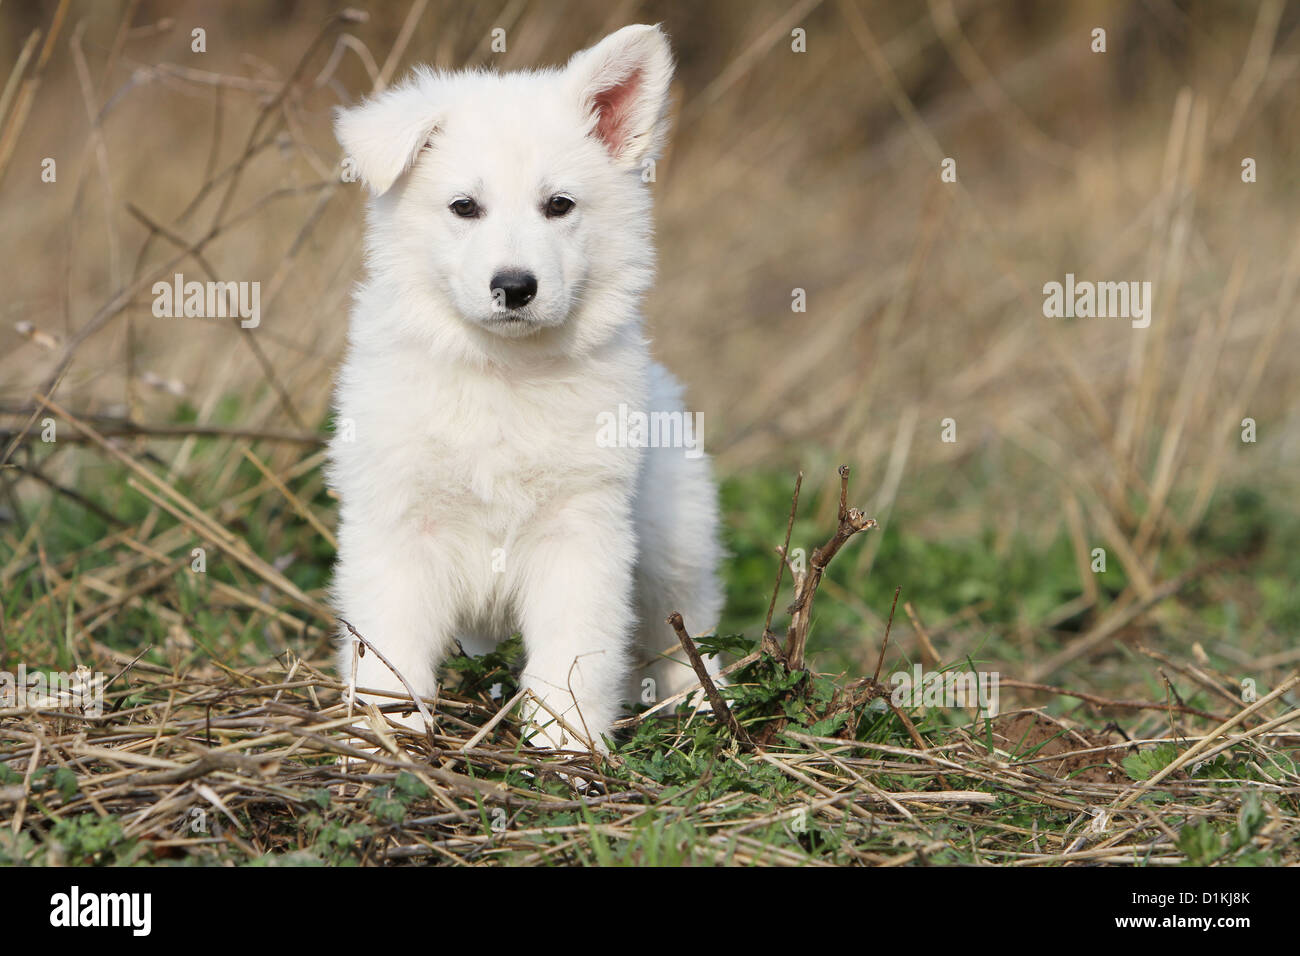 White Swiss Shepherd Dog Berger Blanc Suisse Puppy Standing Face